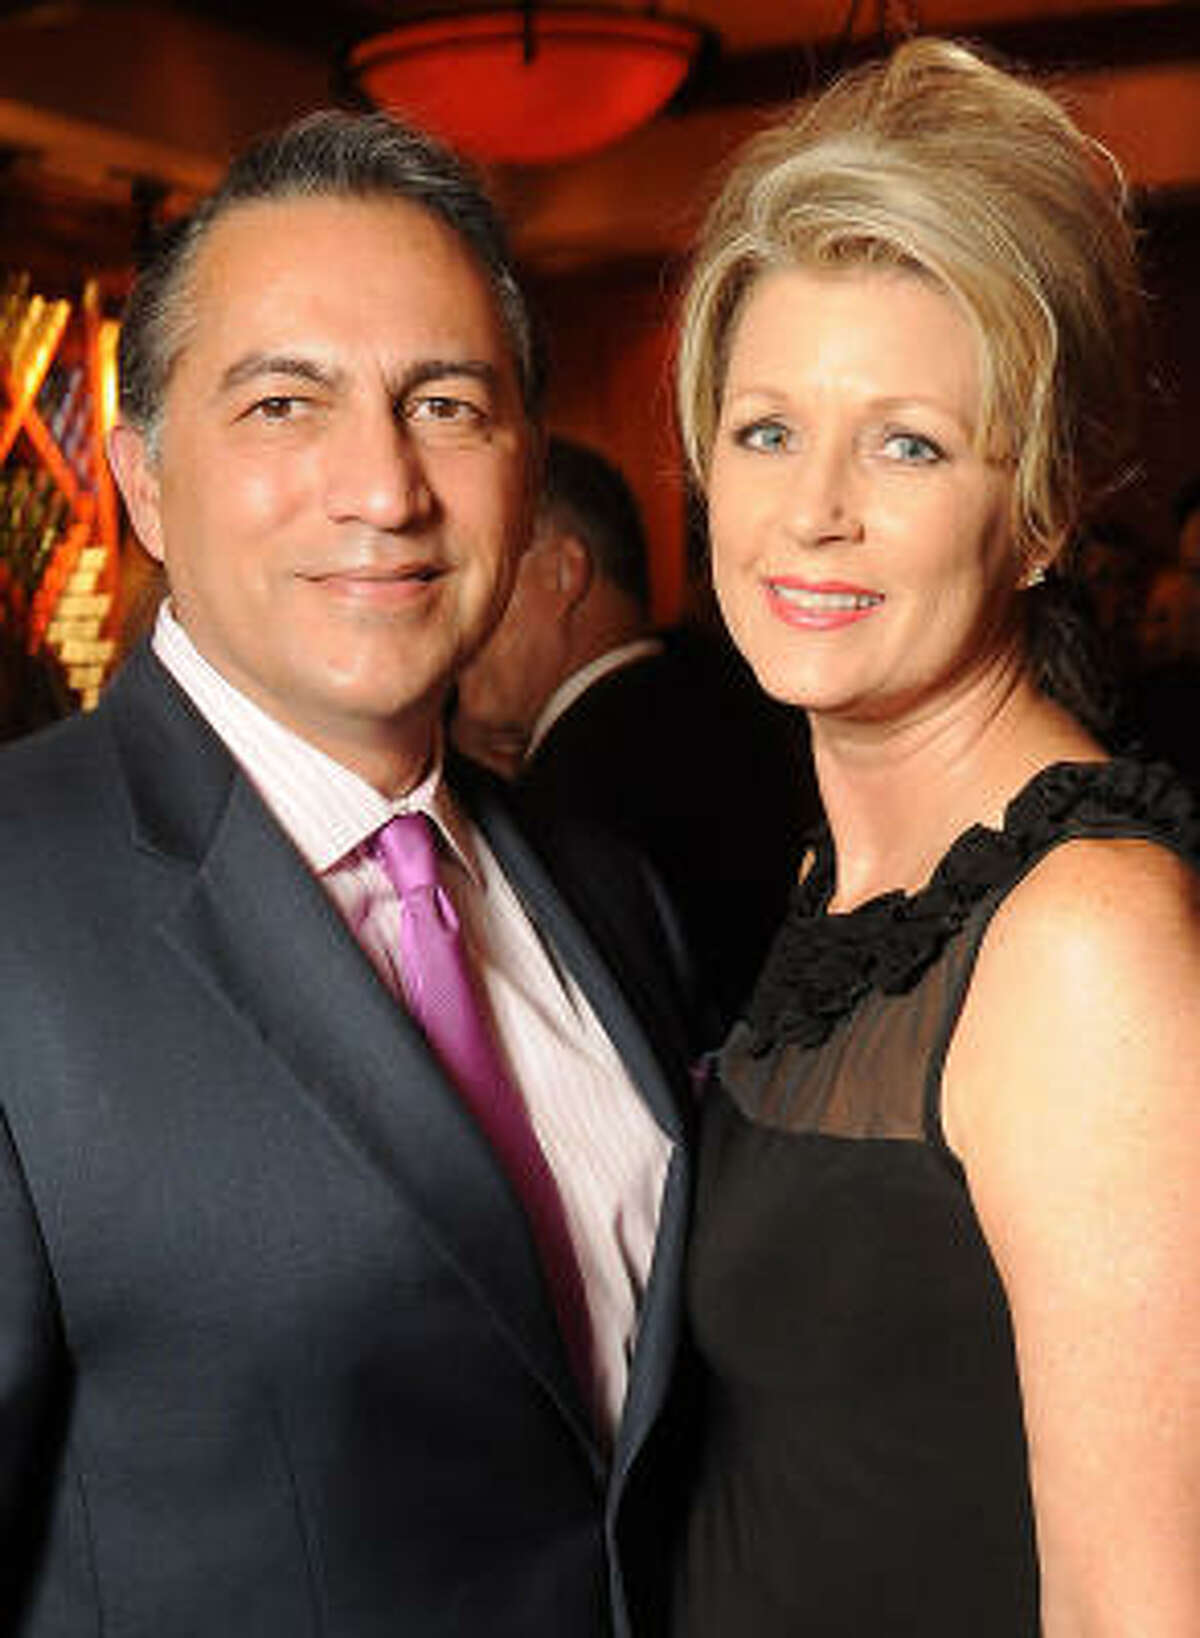 Susan and Jimmy Olguin